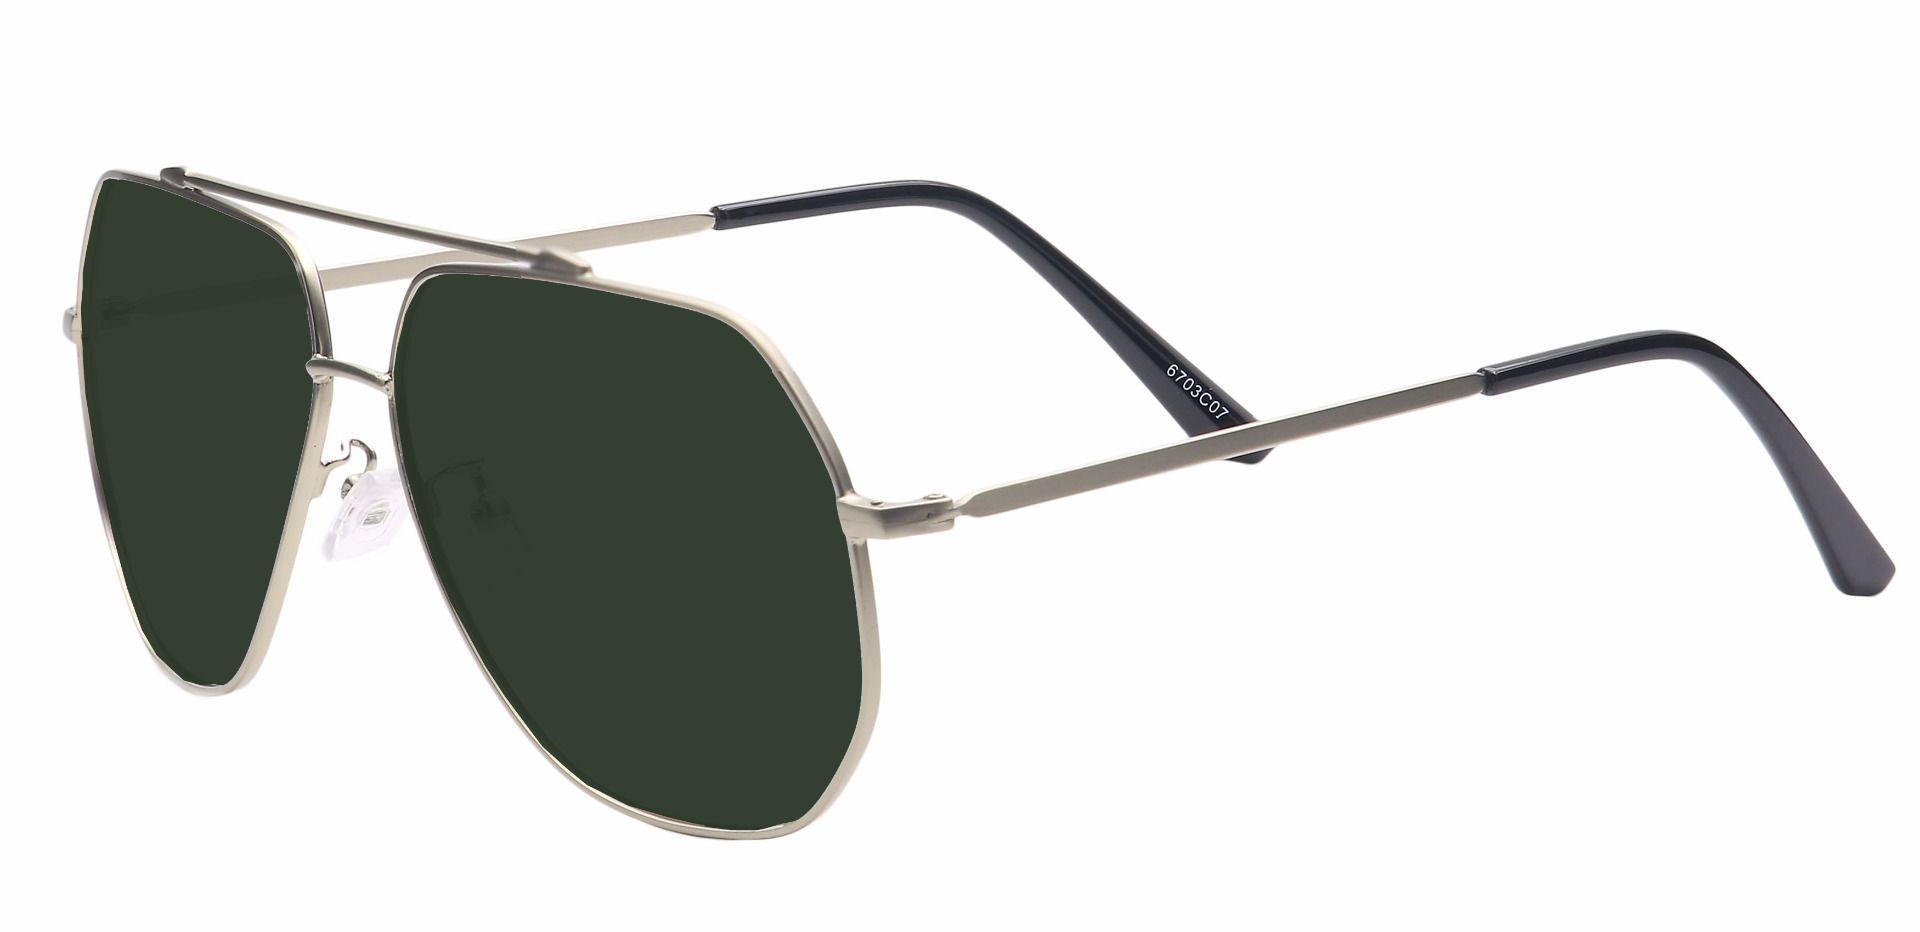 Flair Aviator Single Vision Sunglasses - Gray Frame With Green Lenses